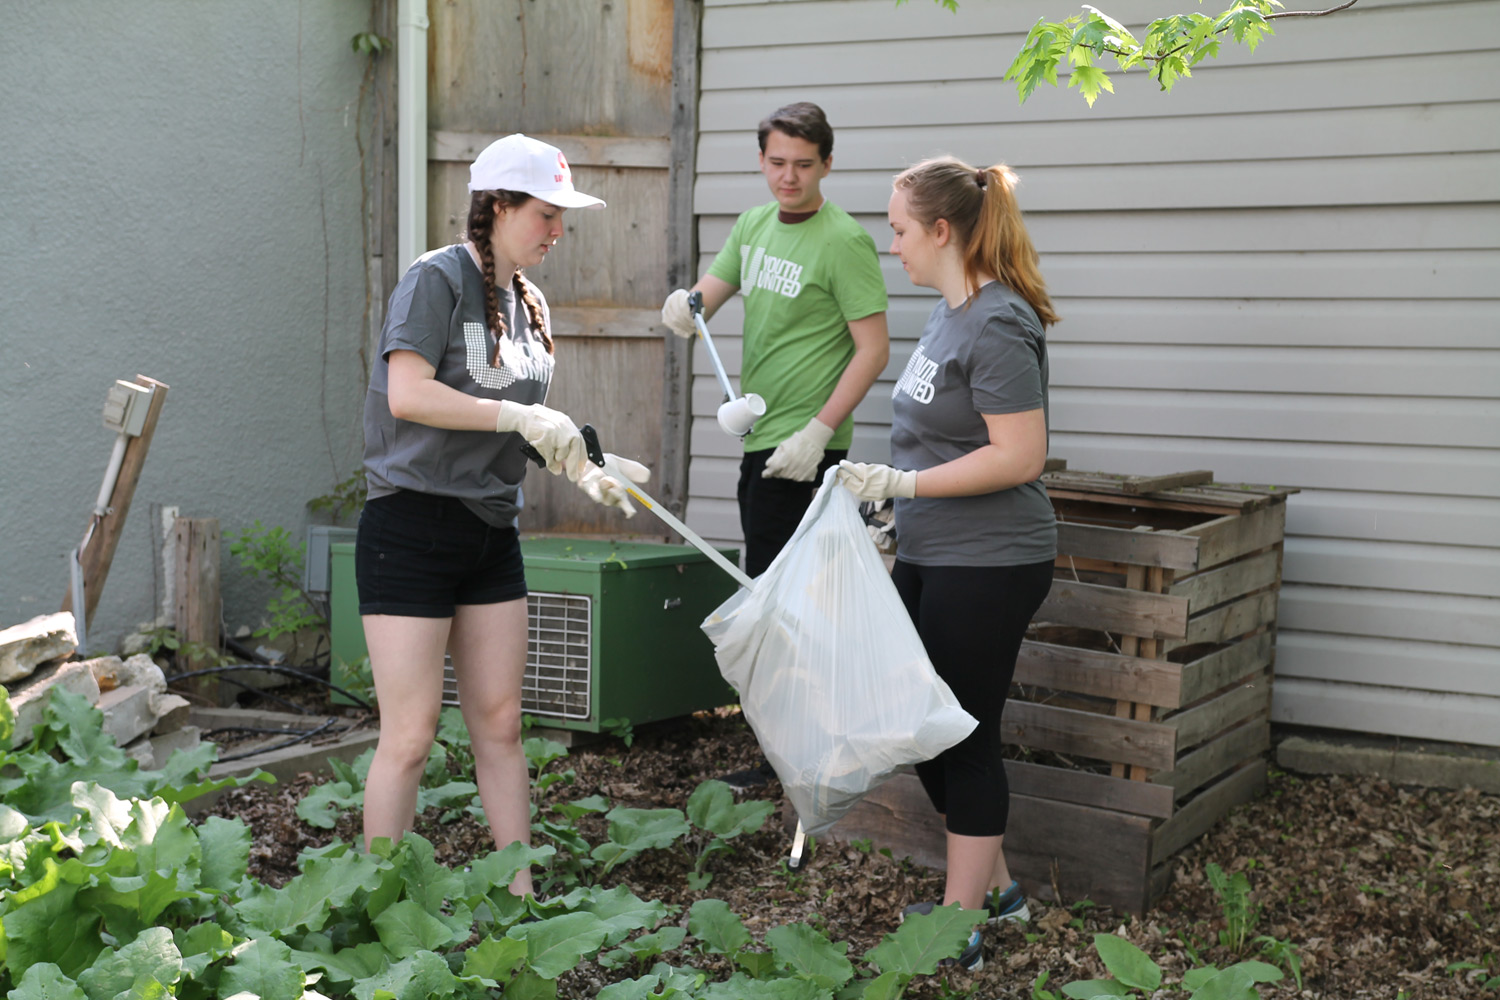 Cleaning up around the North End Women's Centre